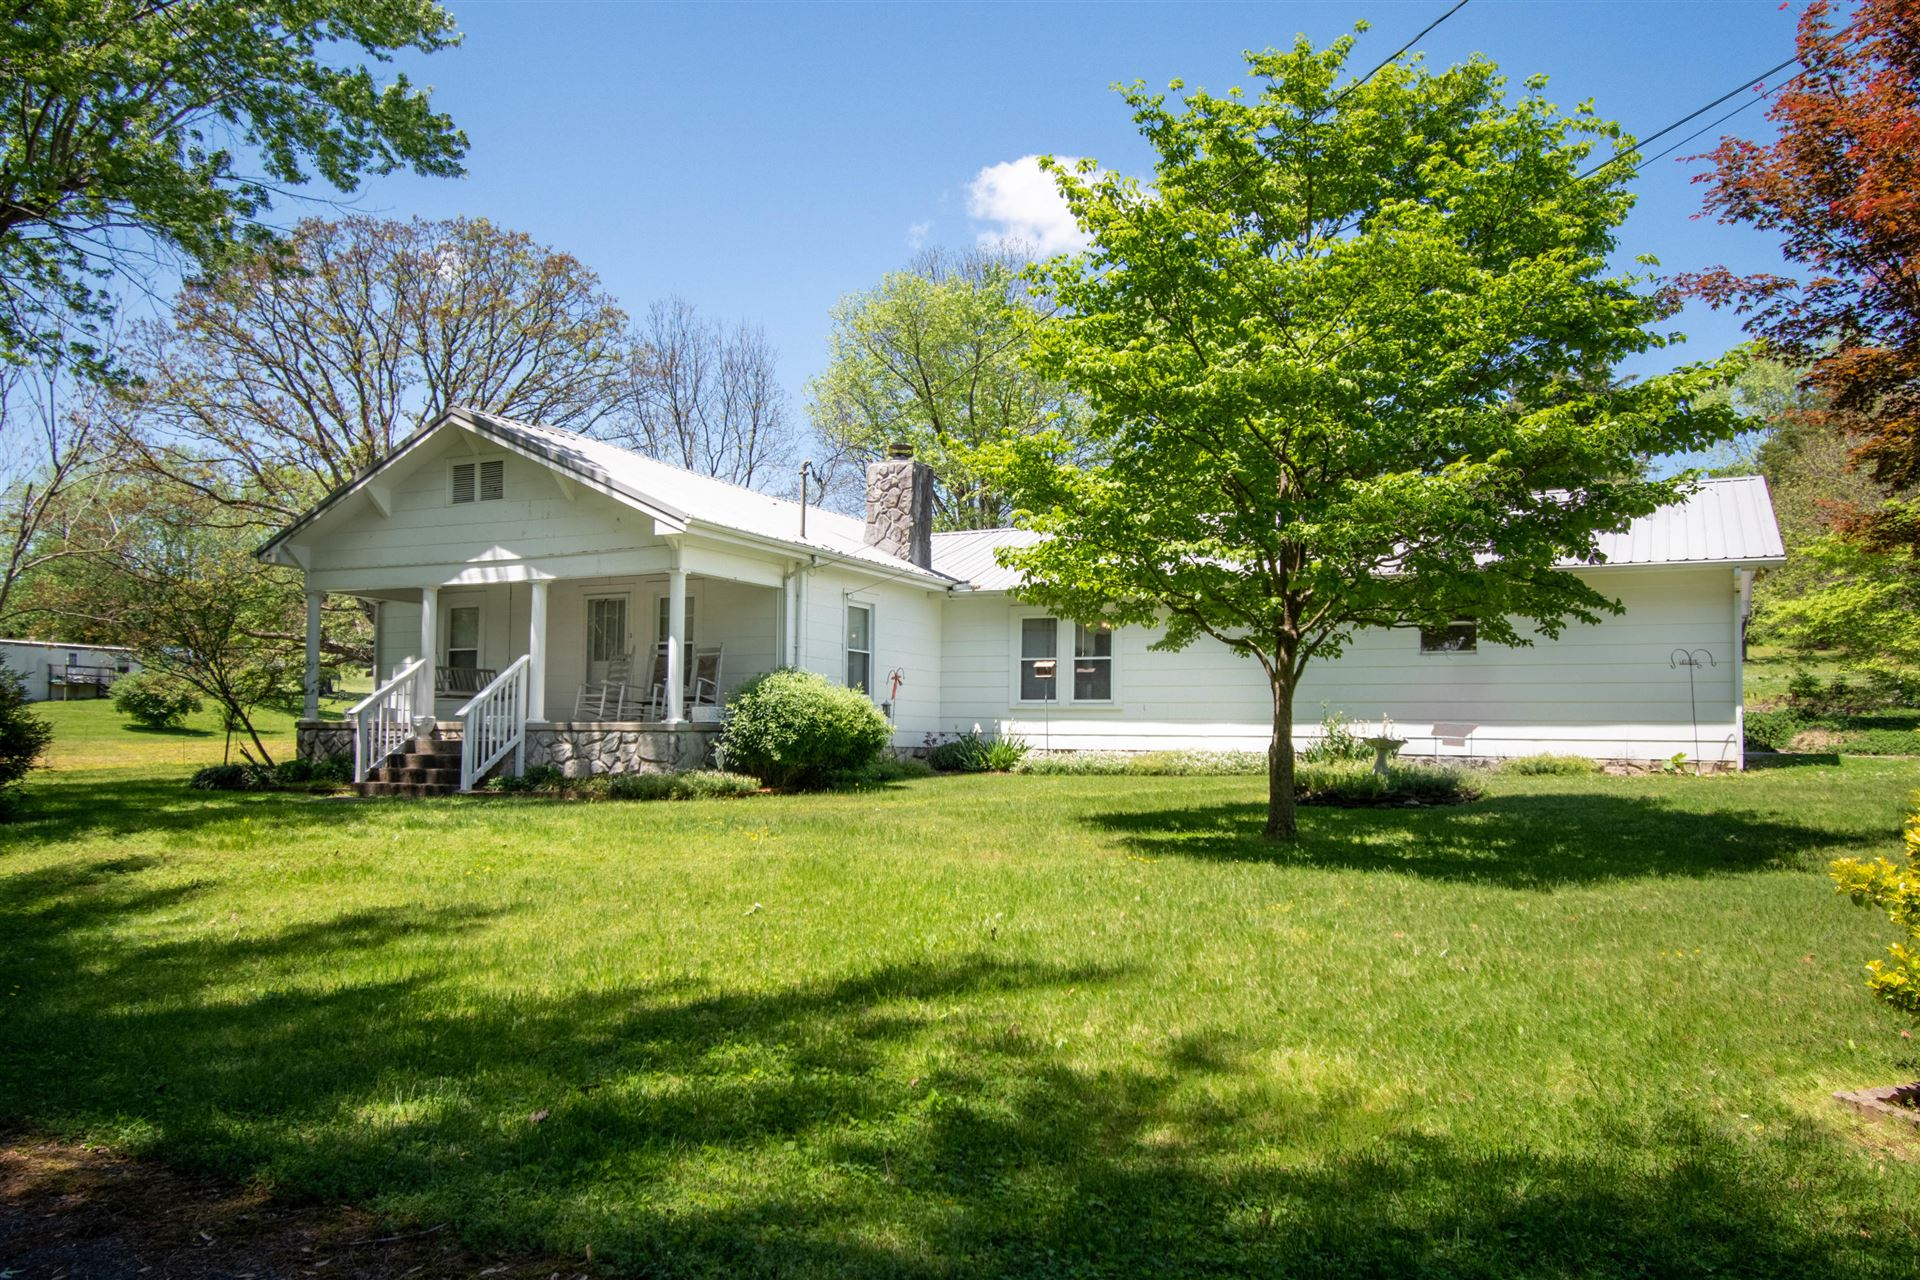 Photo of 7525 Jessie Rd, Knoxville, TN 37924 (MLS # 1153423)